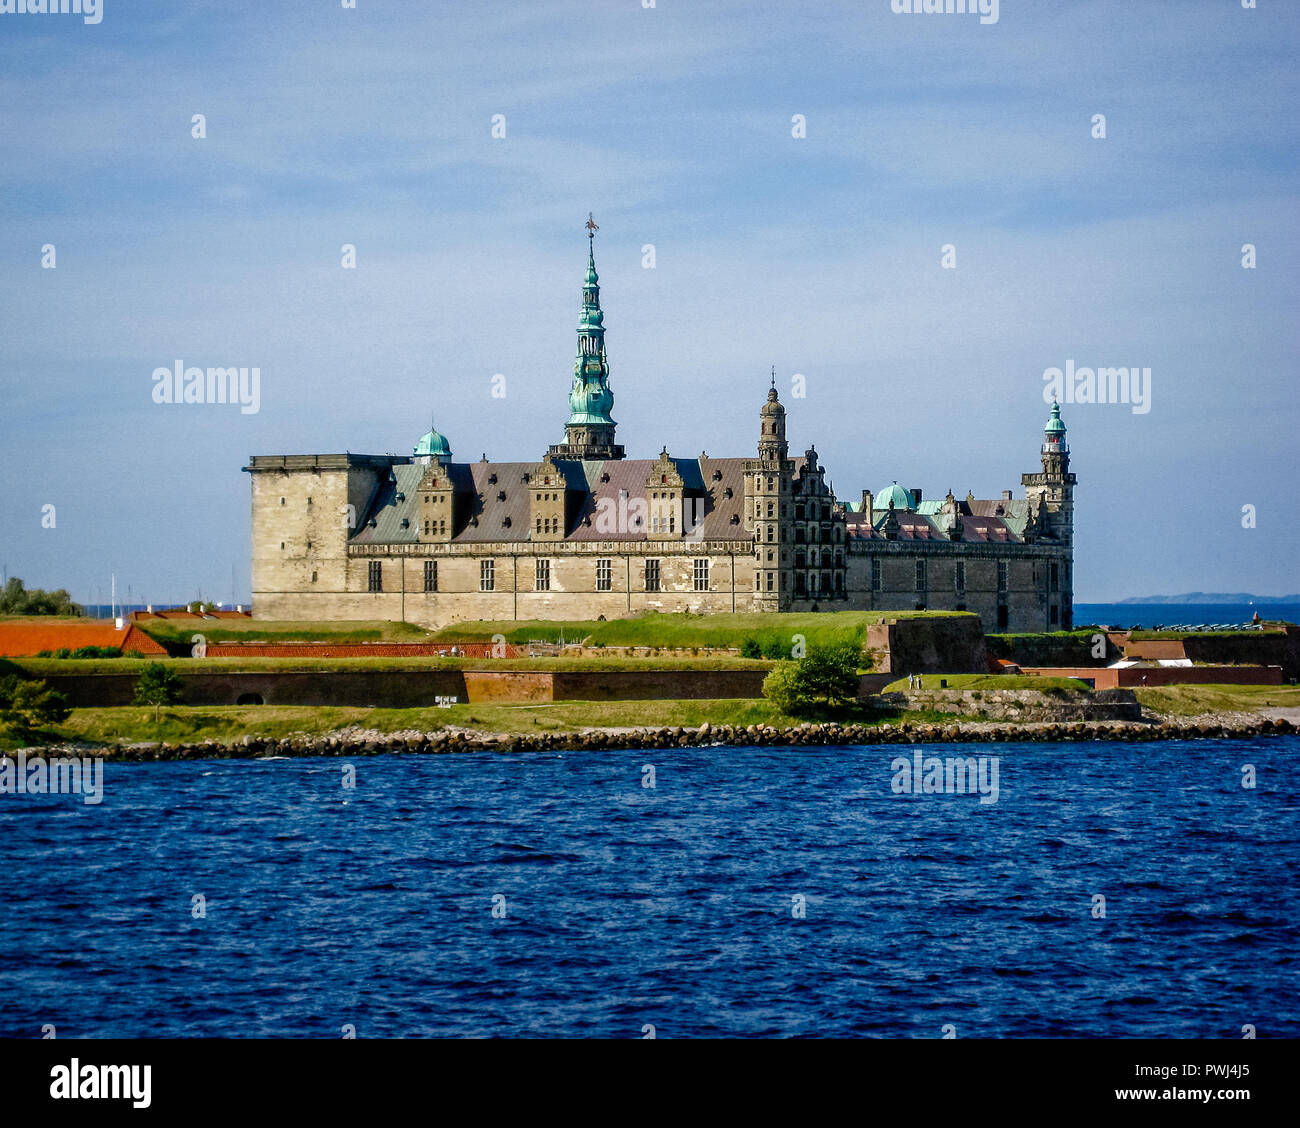 The home of Hamlet. - Stock Image